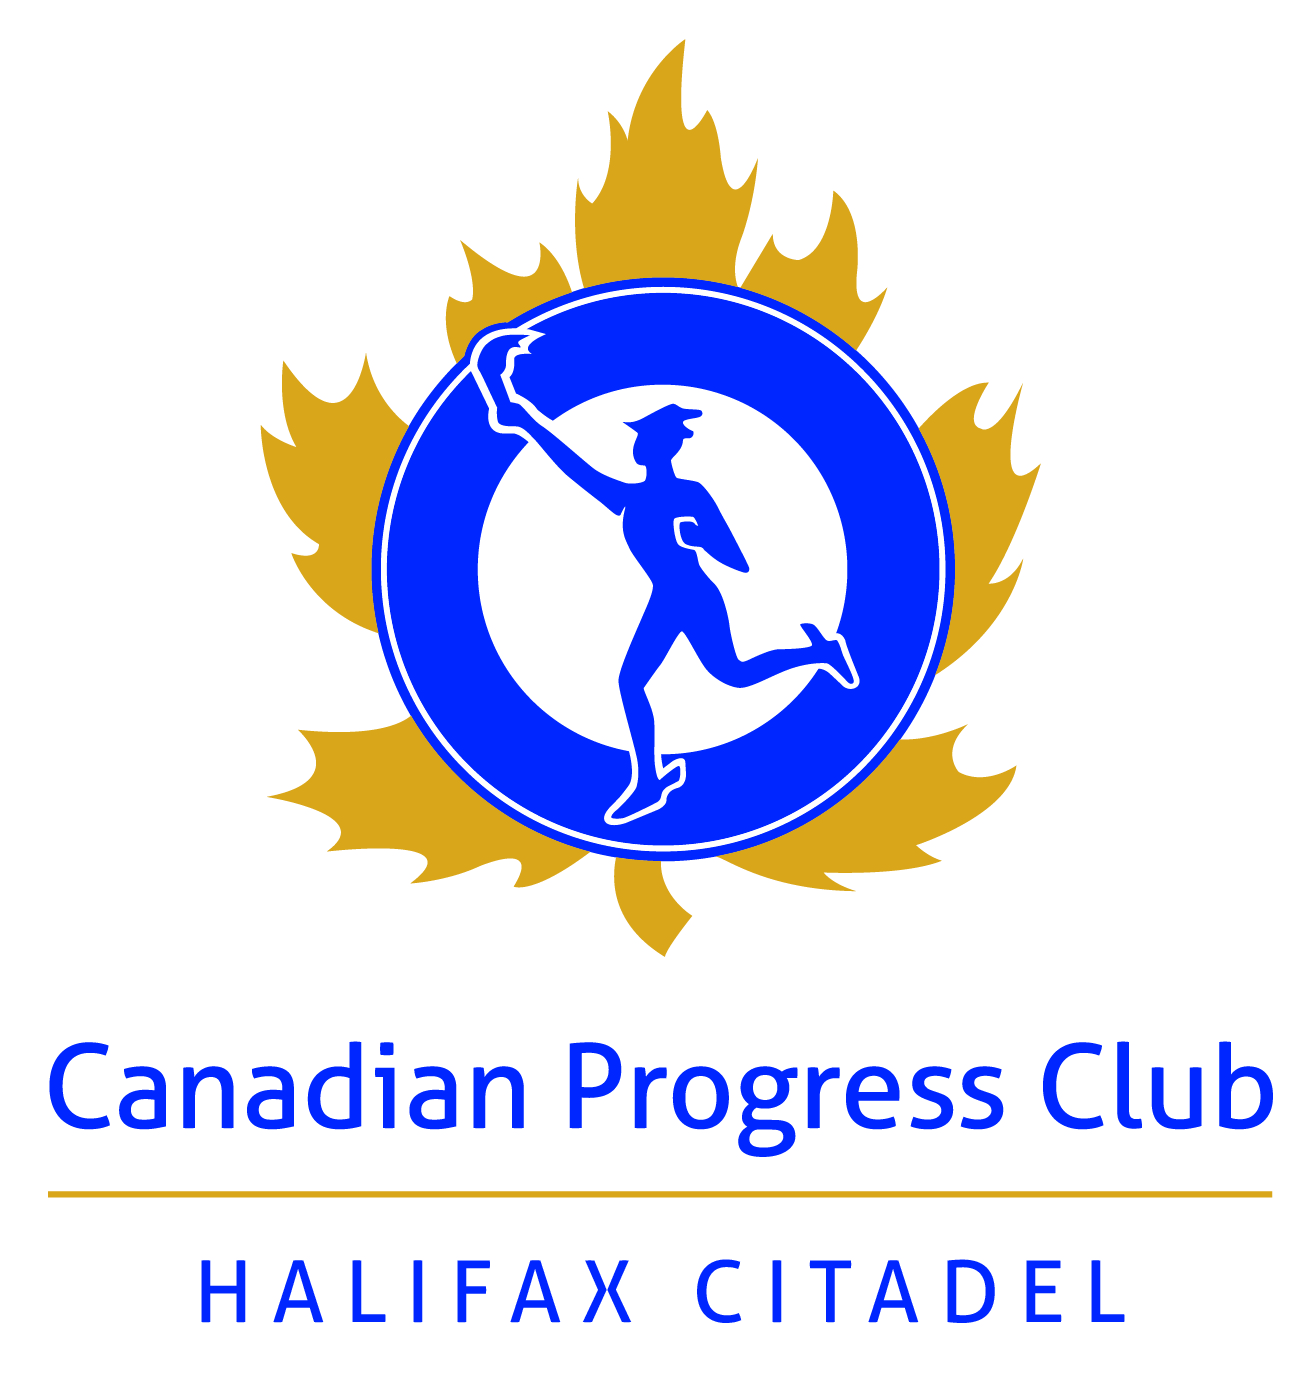 Canadian Progress Club Halifax Citadel